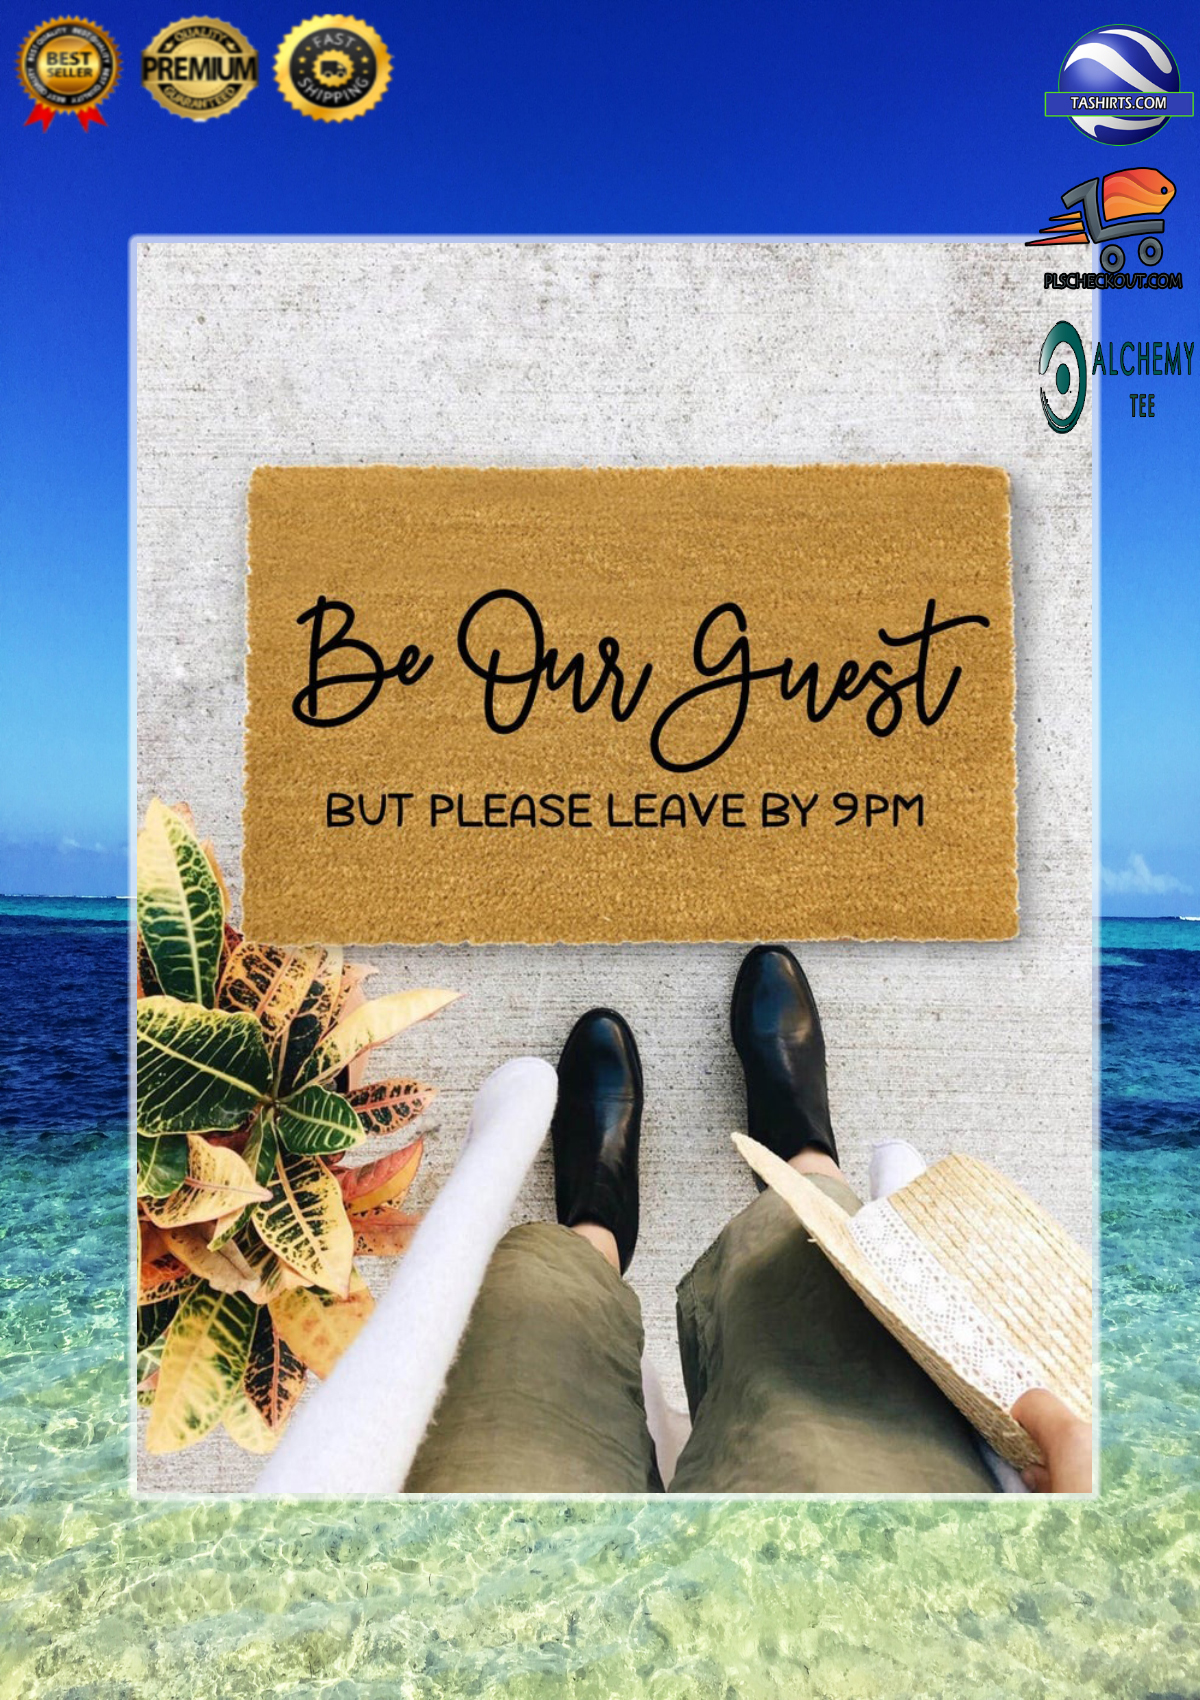 Be our guest but please leave by 9pm doormat 2